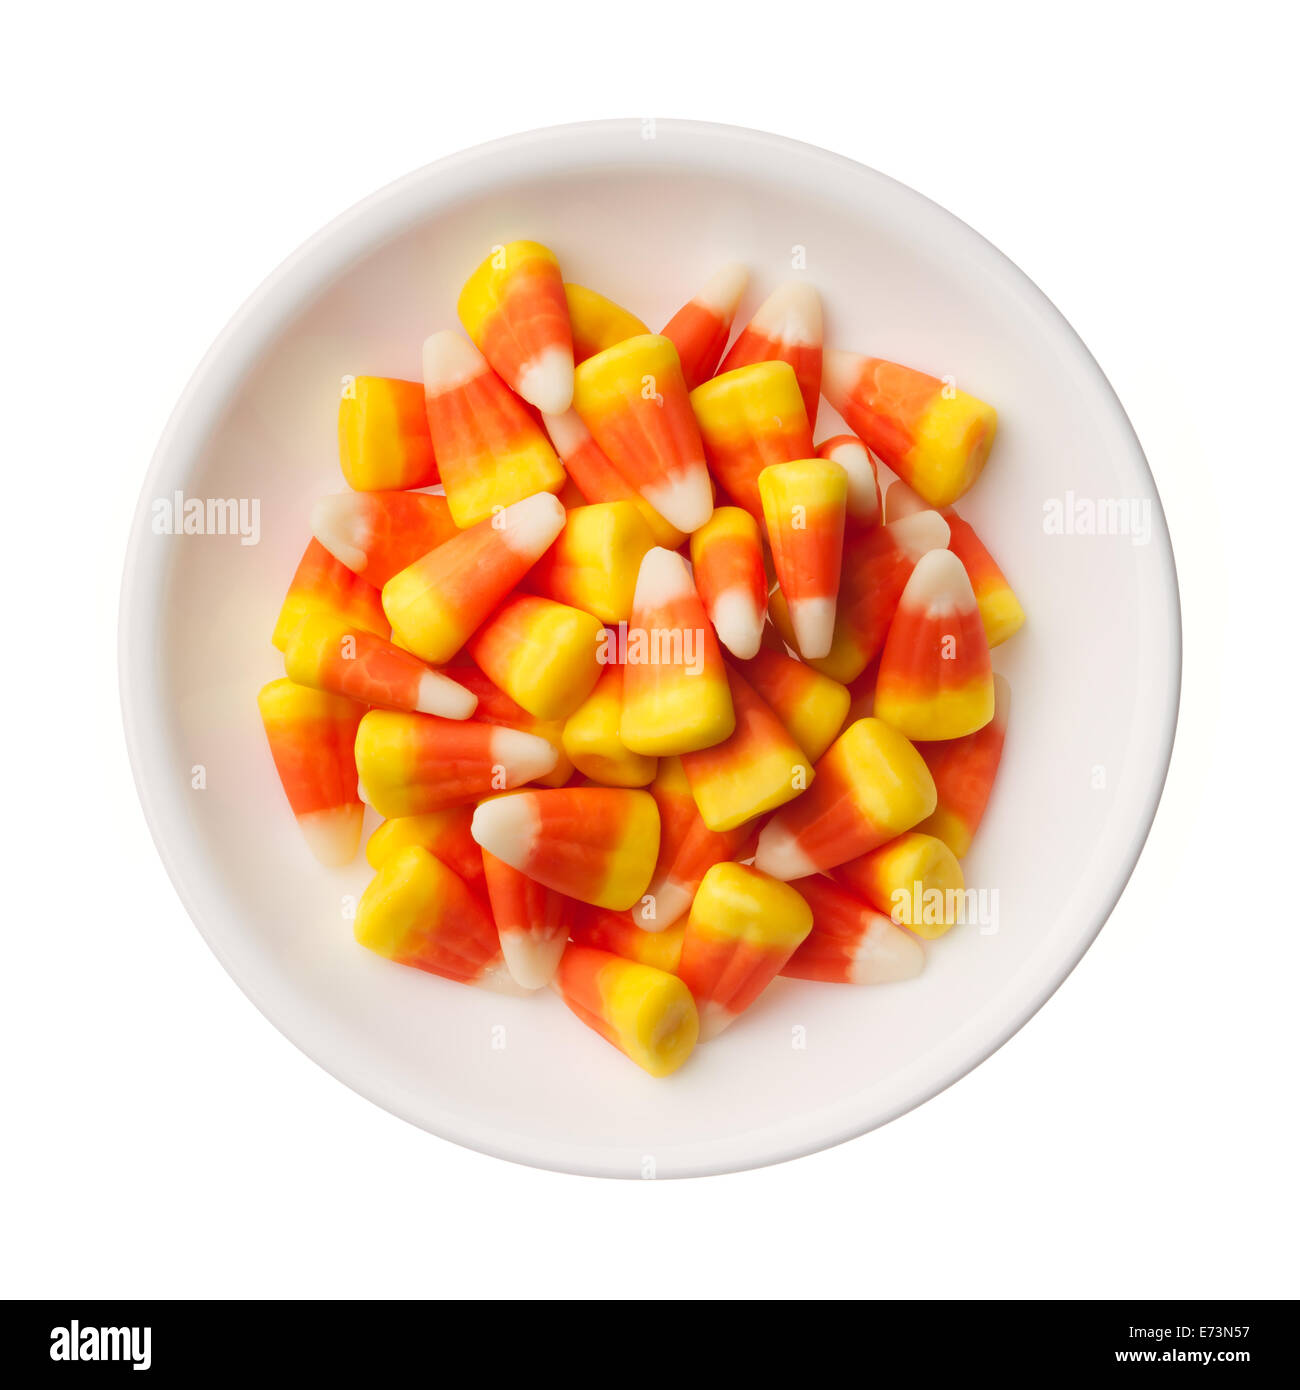 Halloween Candy Corns isolated on white background - Stock Image